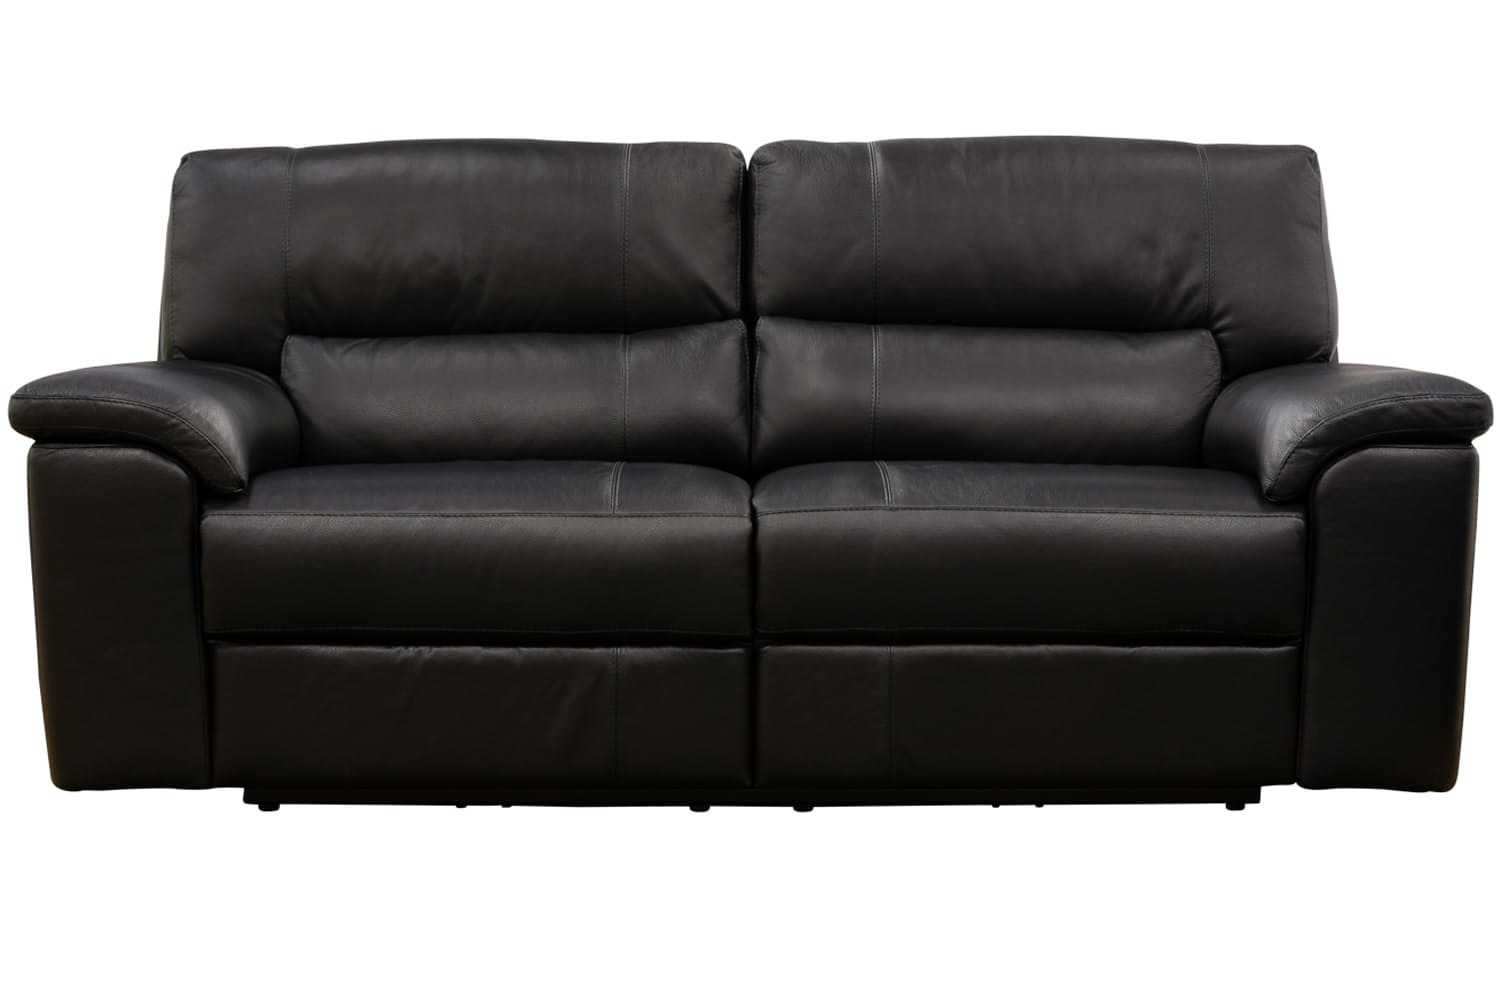 Iris Electric 3 Seater Leather Sofa